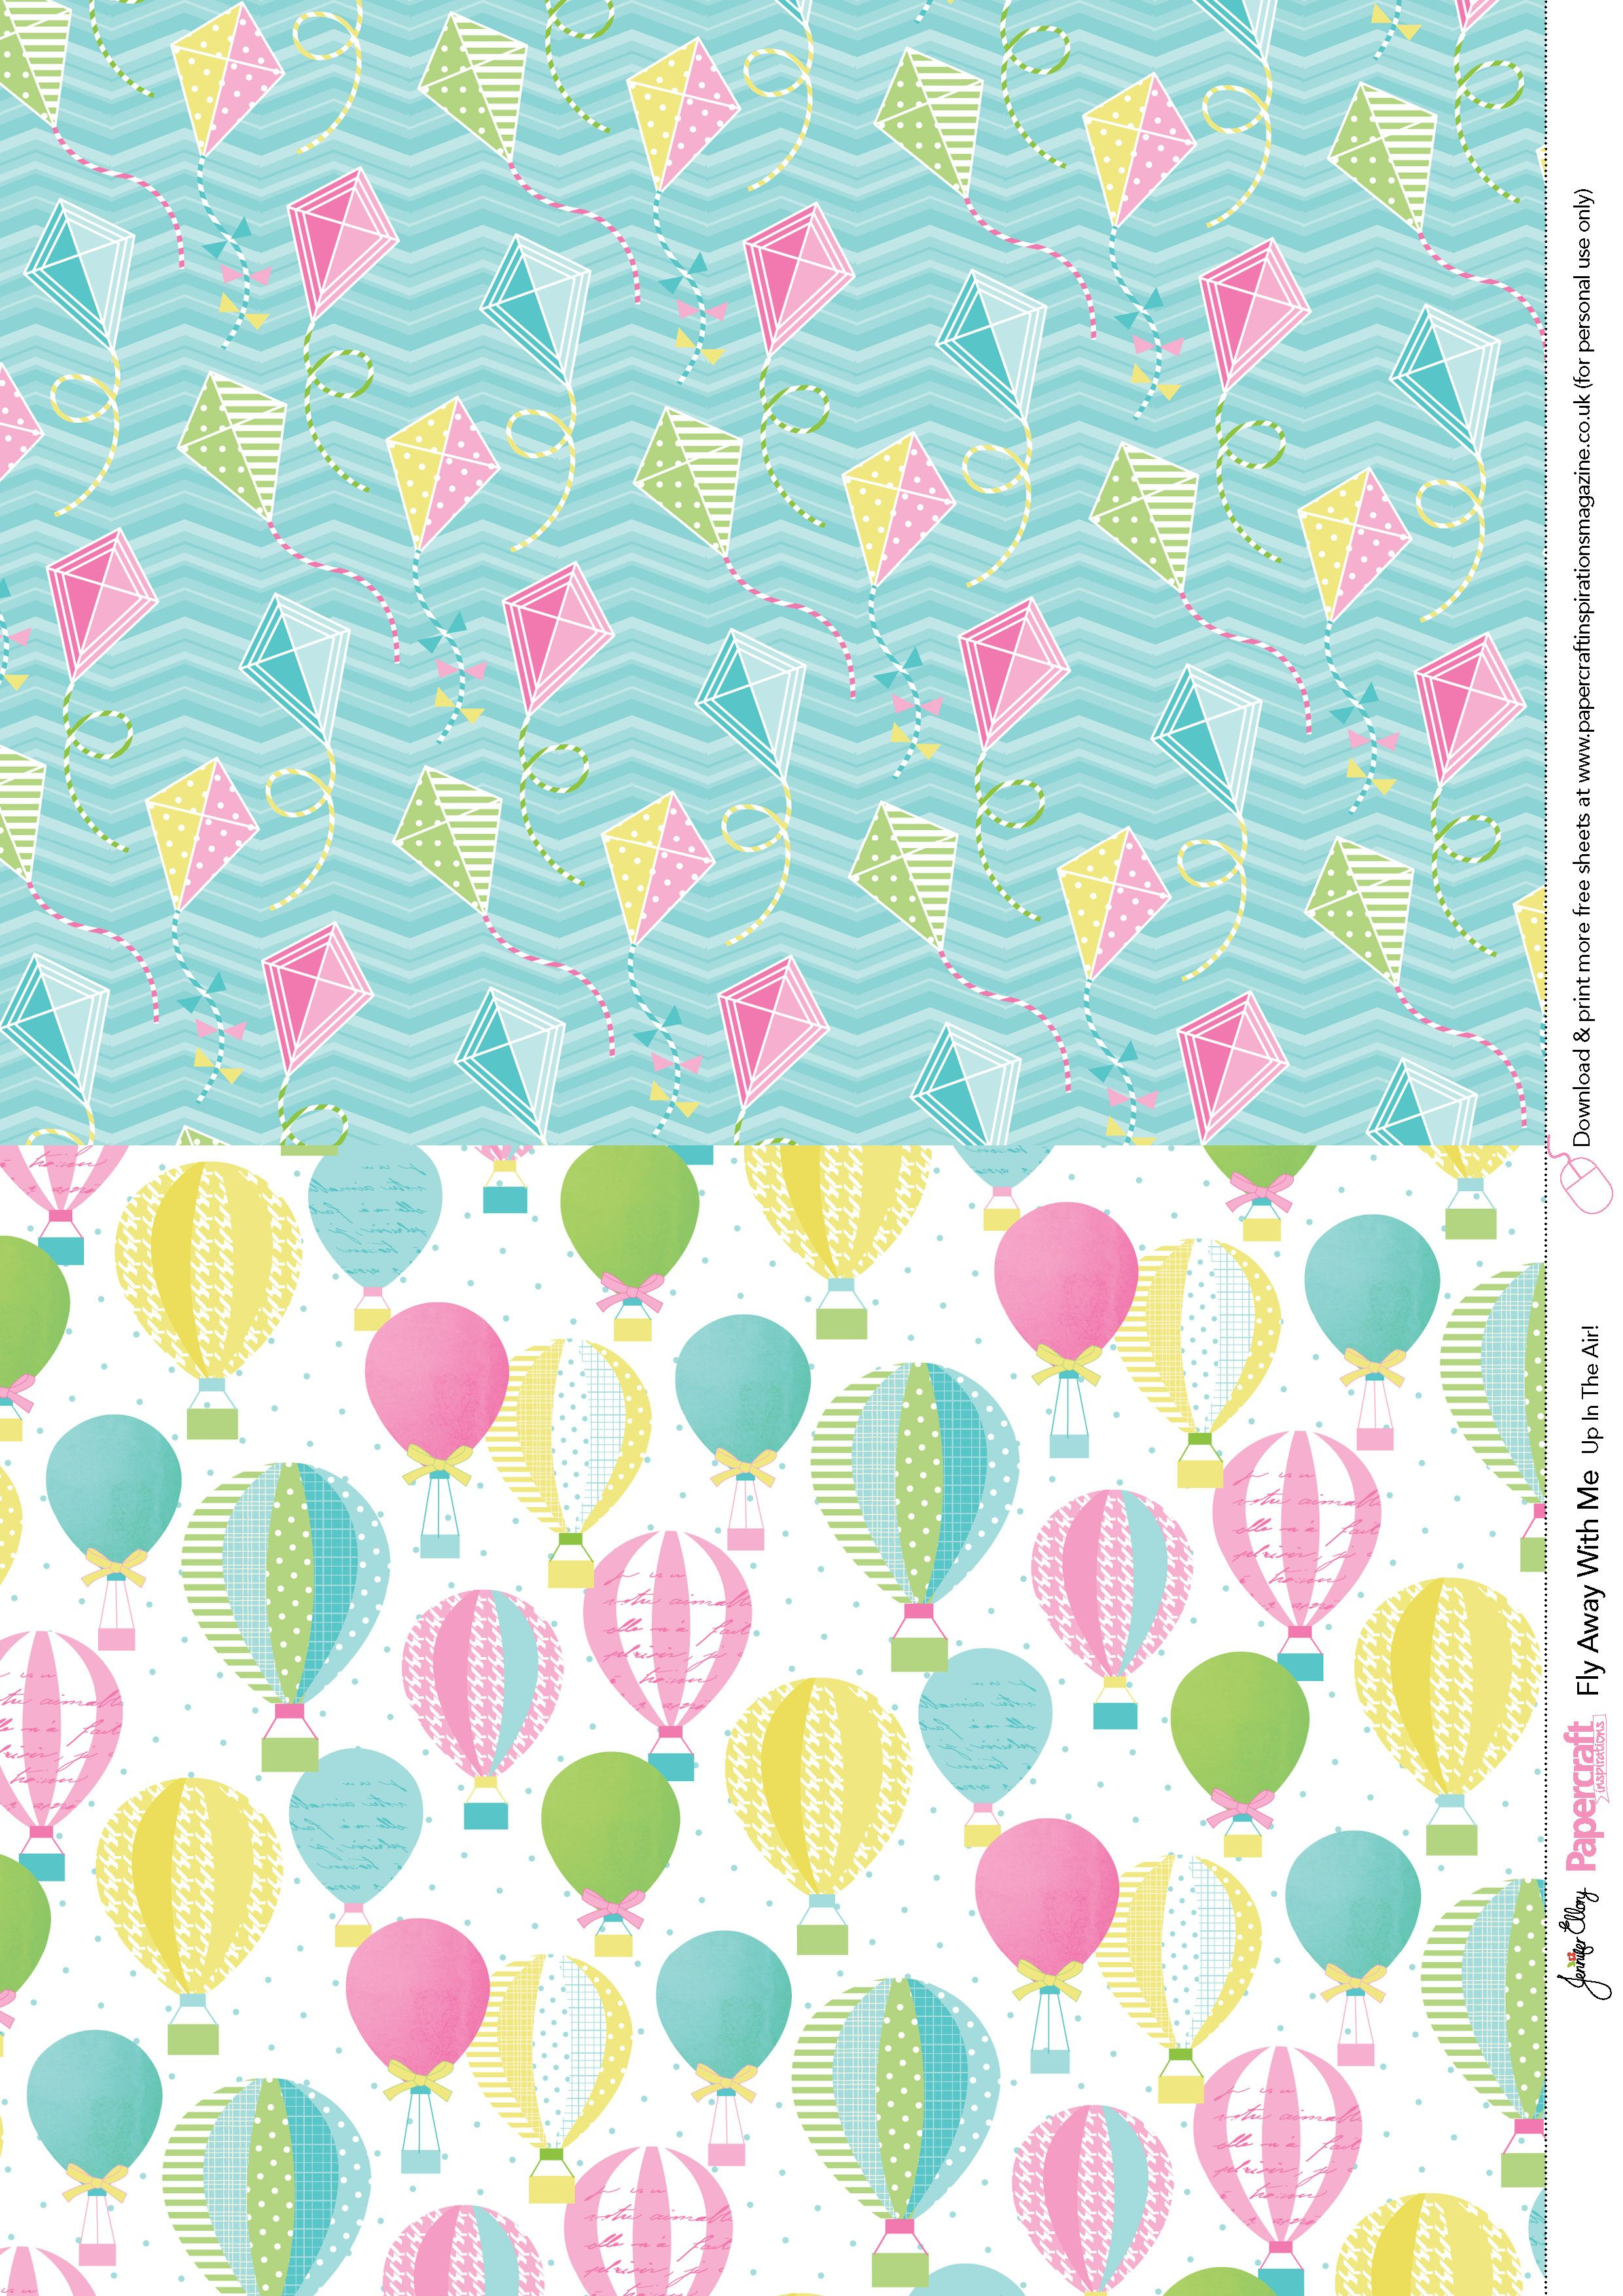 Fly Away With Me Free Printables From Papercraft Inspirations 138 - Free Card Creator Printable